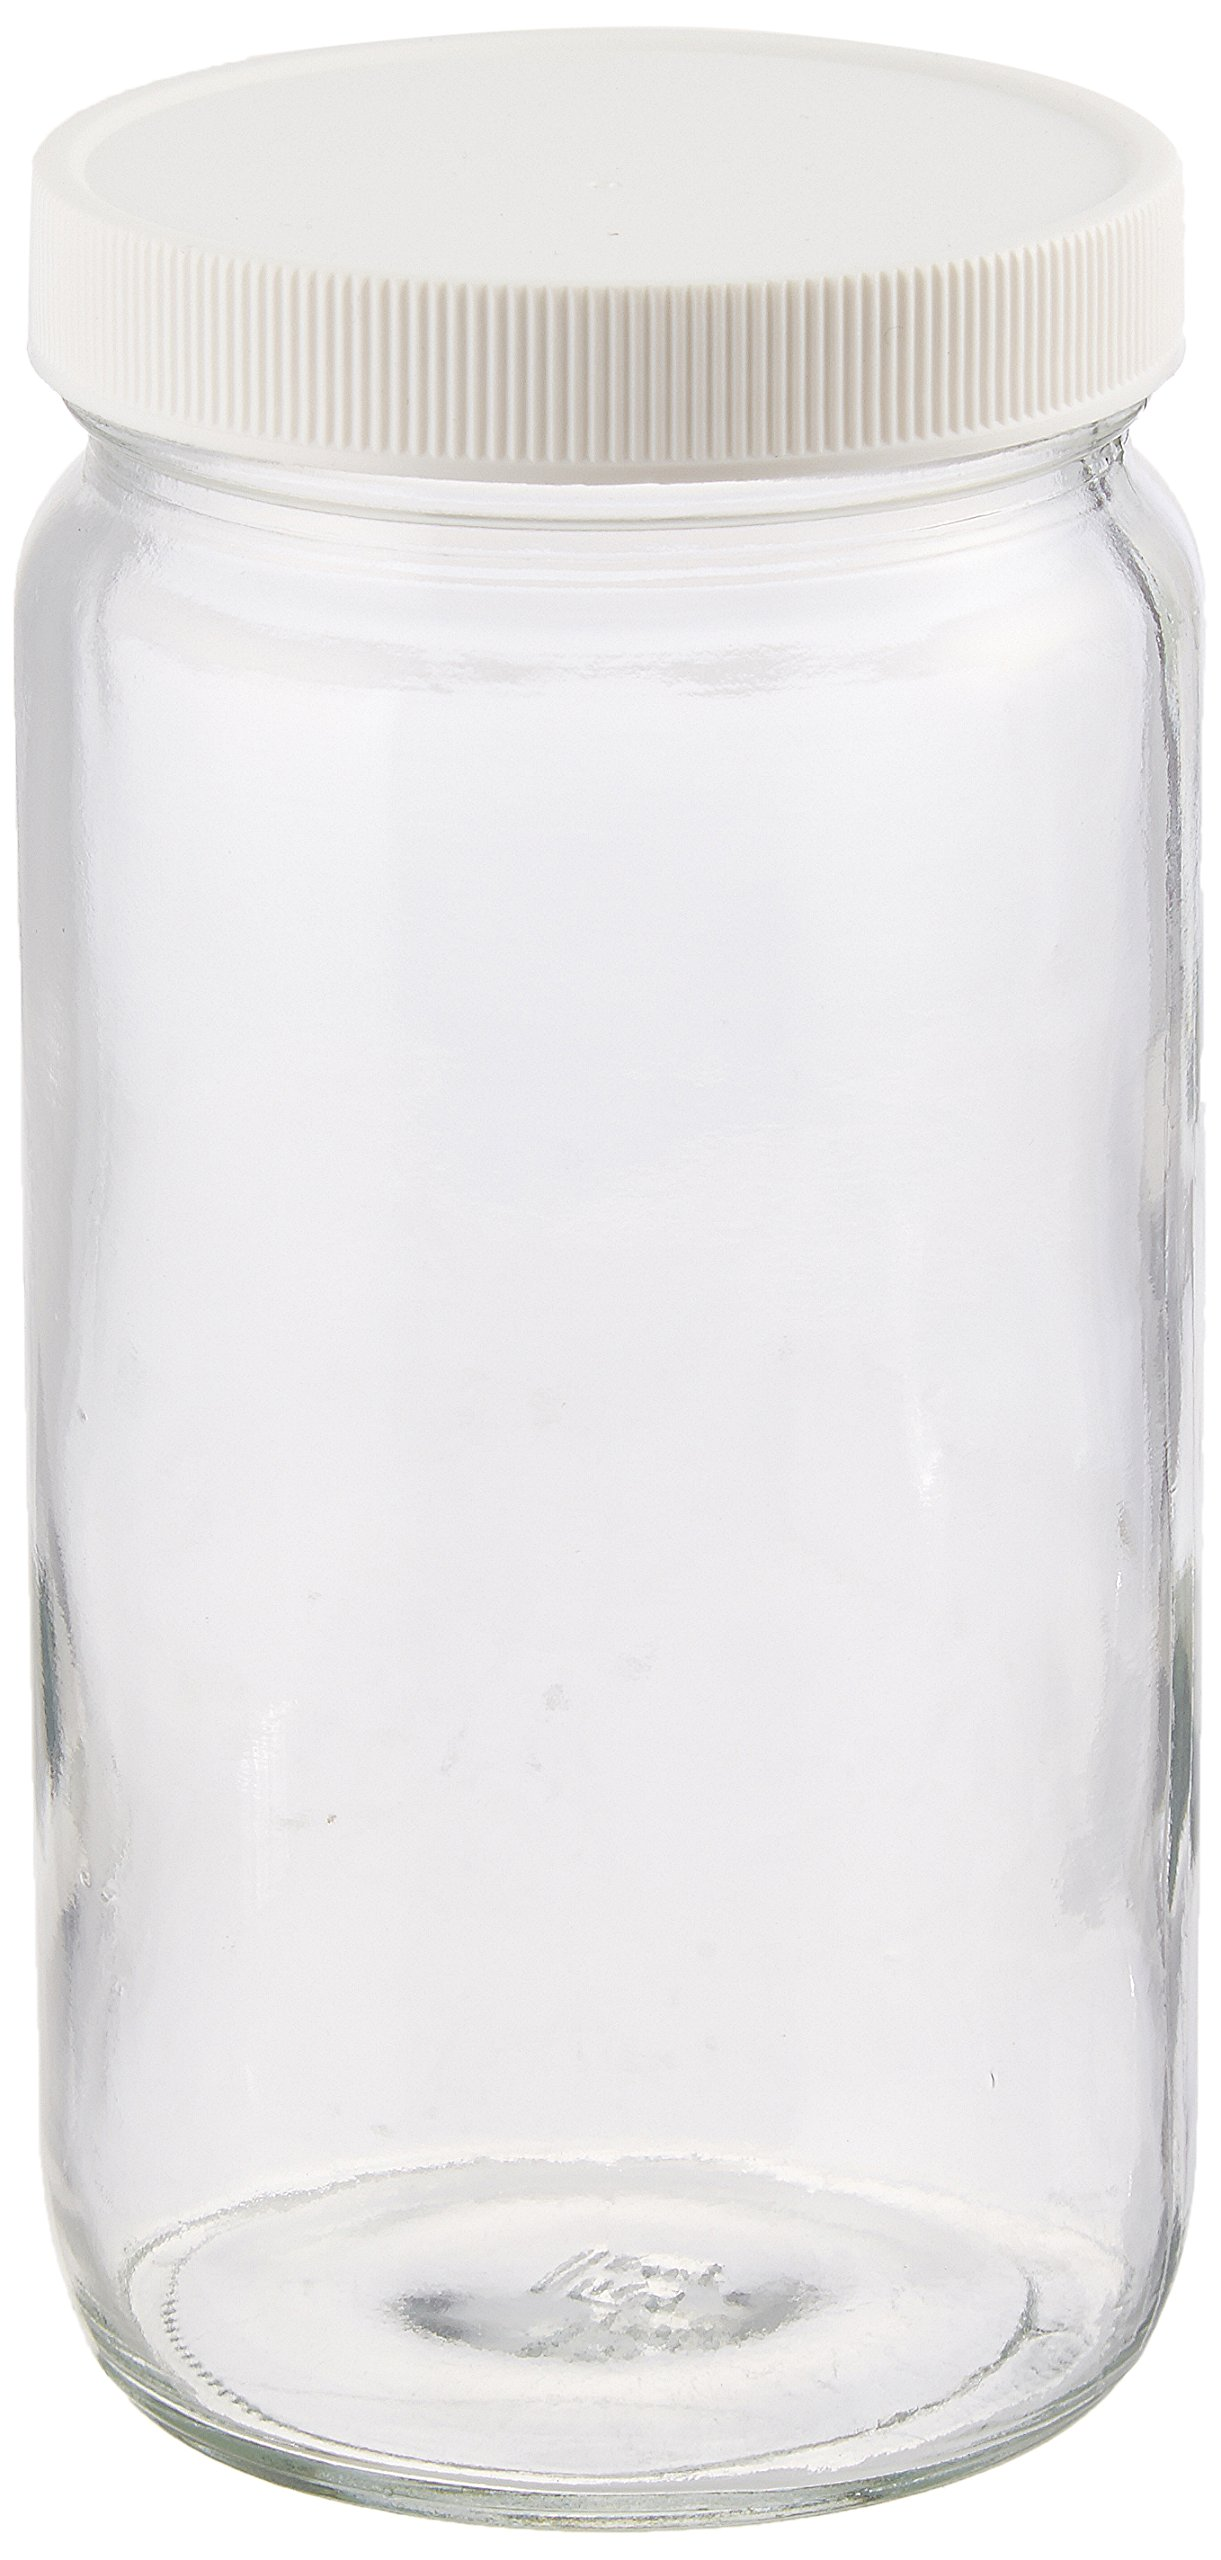 JG Finneran D0096-16 Clear Borosilicate Glass Tall Straight Sided Standard Wide Mouth Jar with White Polypropylene Closure, Unlined, 70-400mm Cap Size, 16oz Capacity (Pack of 12)